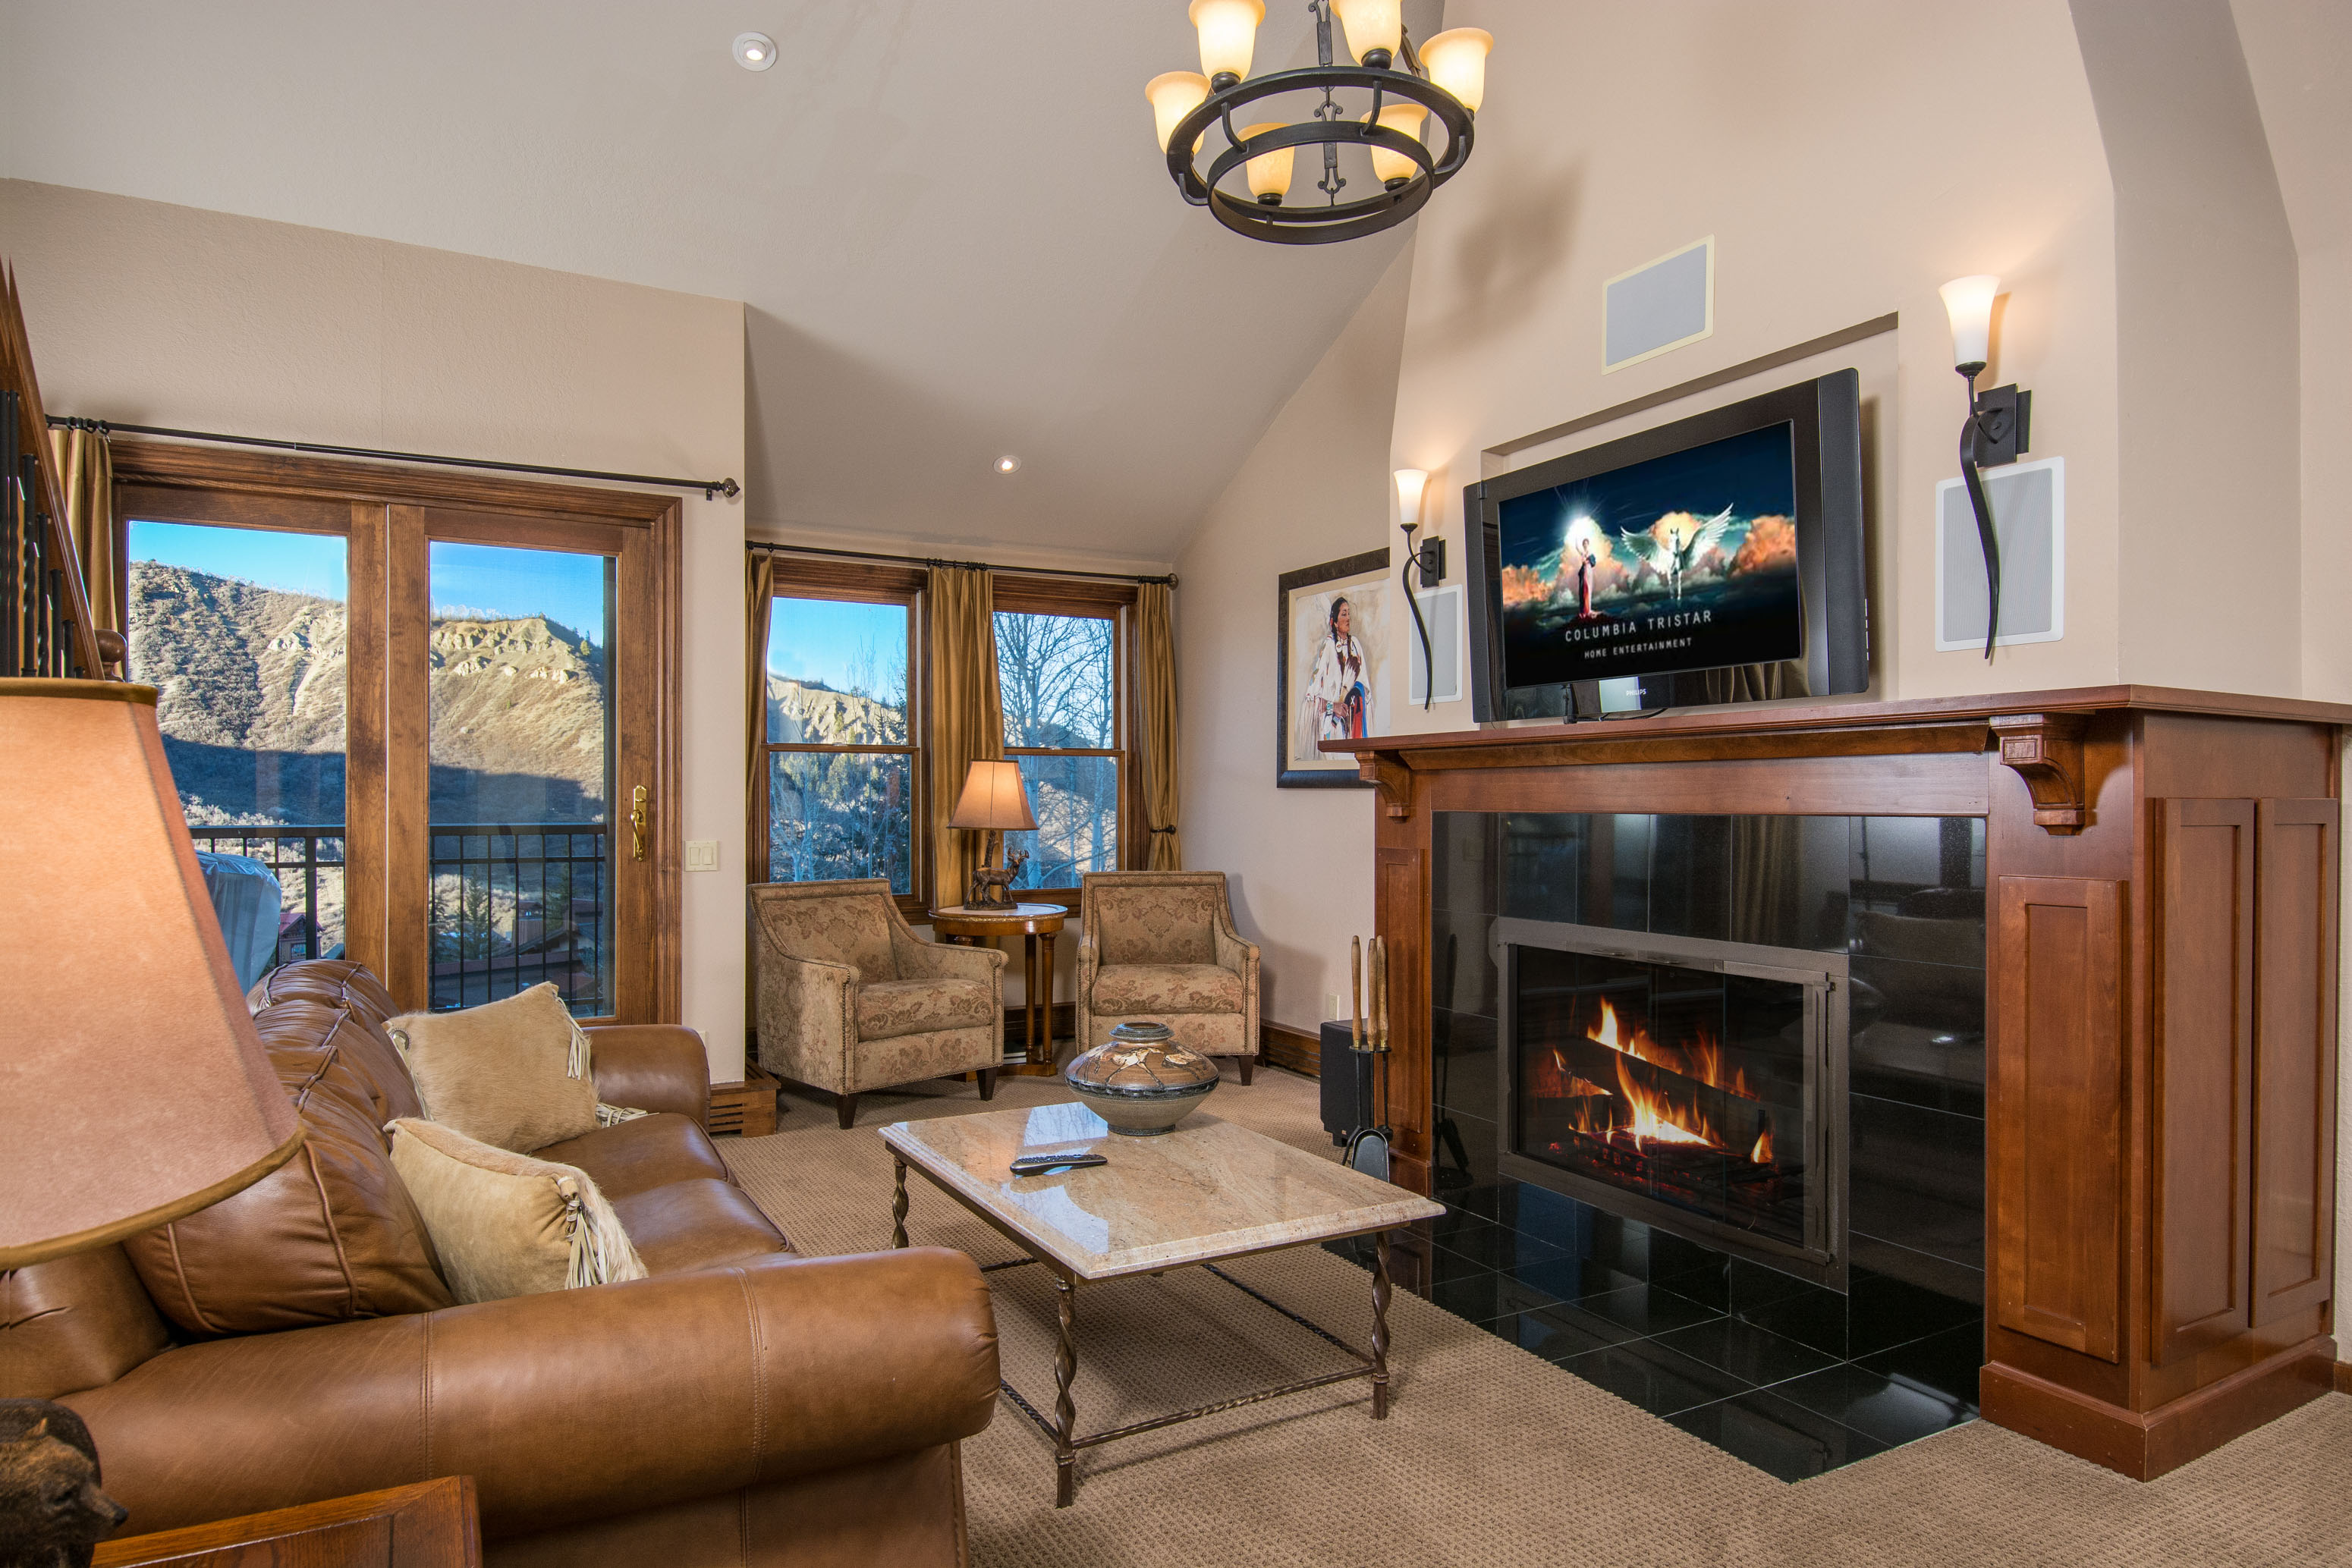 Condominium for Sale at Woodrun Place 425 Wood Road Unit 9 Snowmass Village, Colorado, 81615 United States